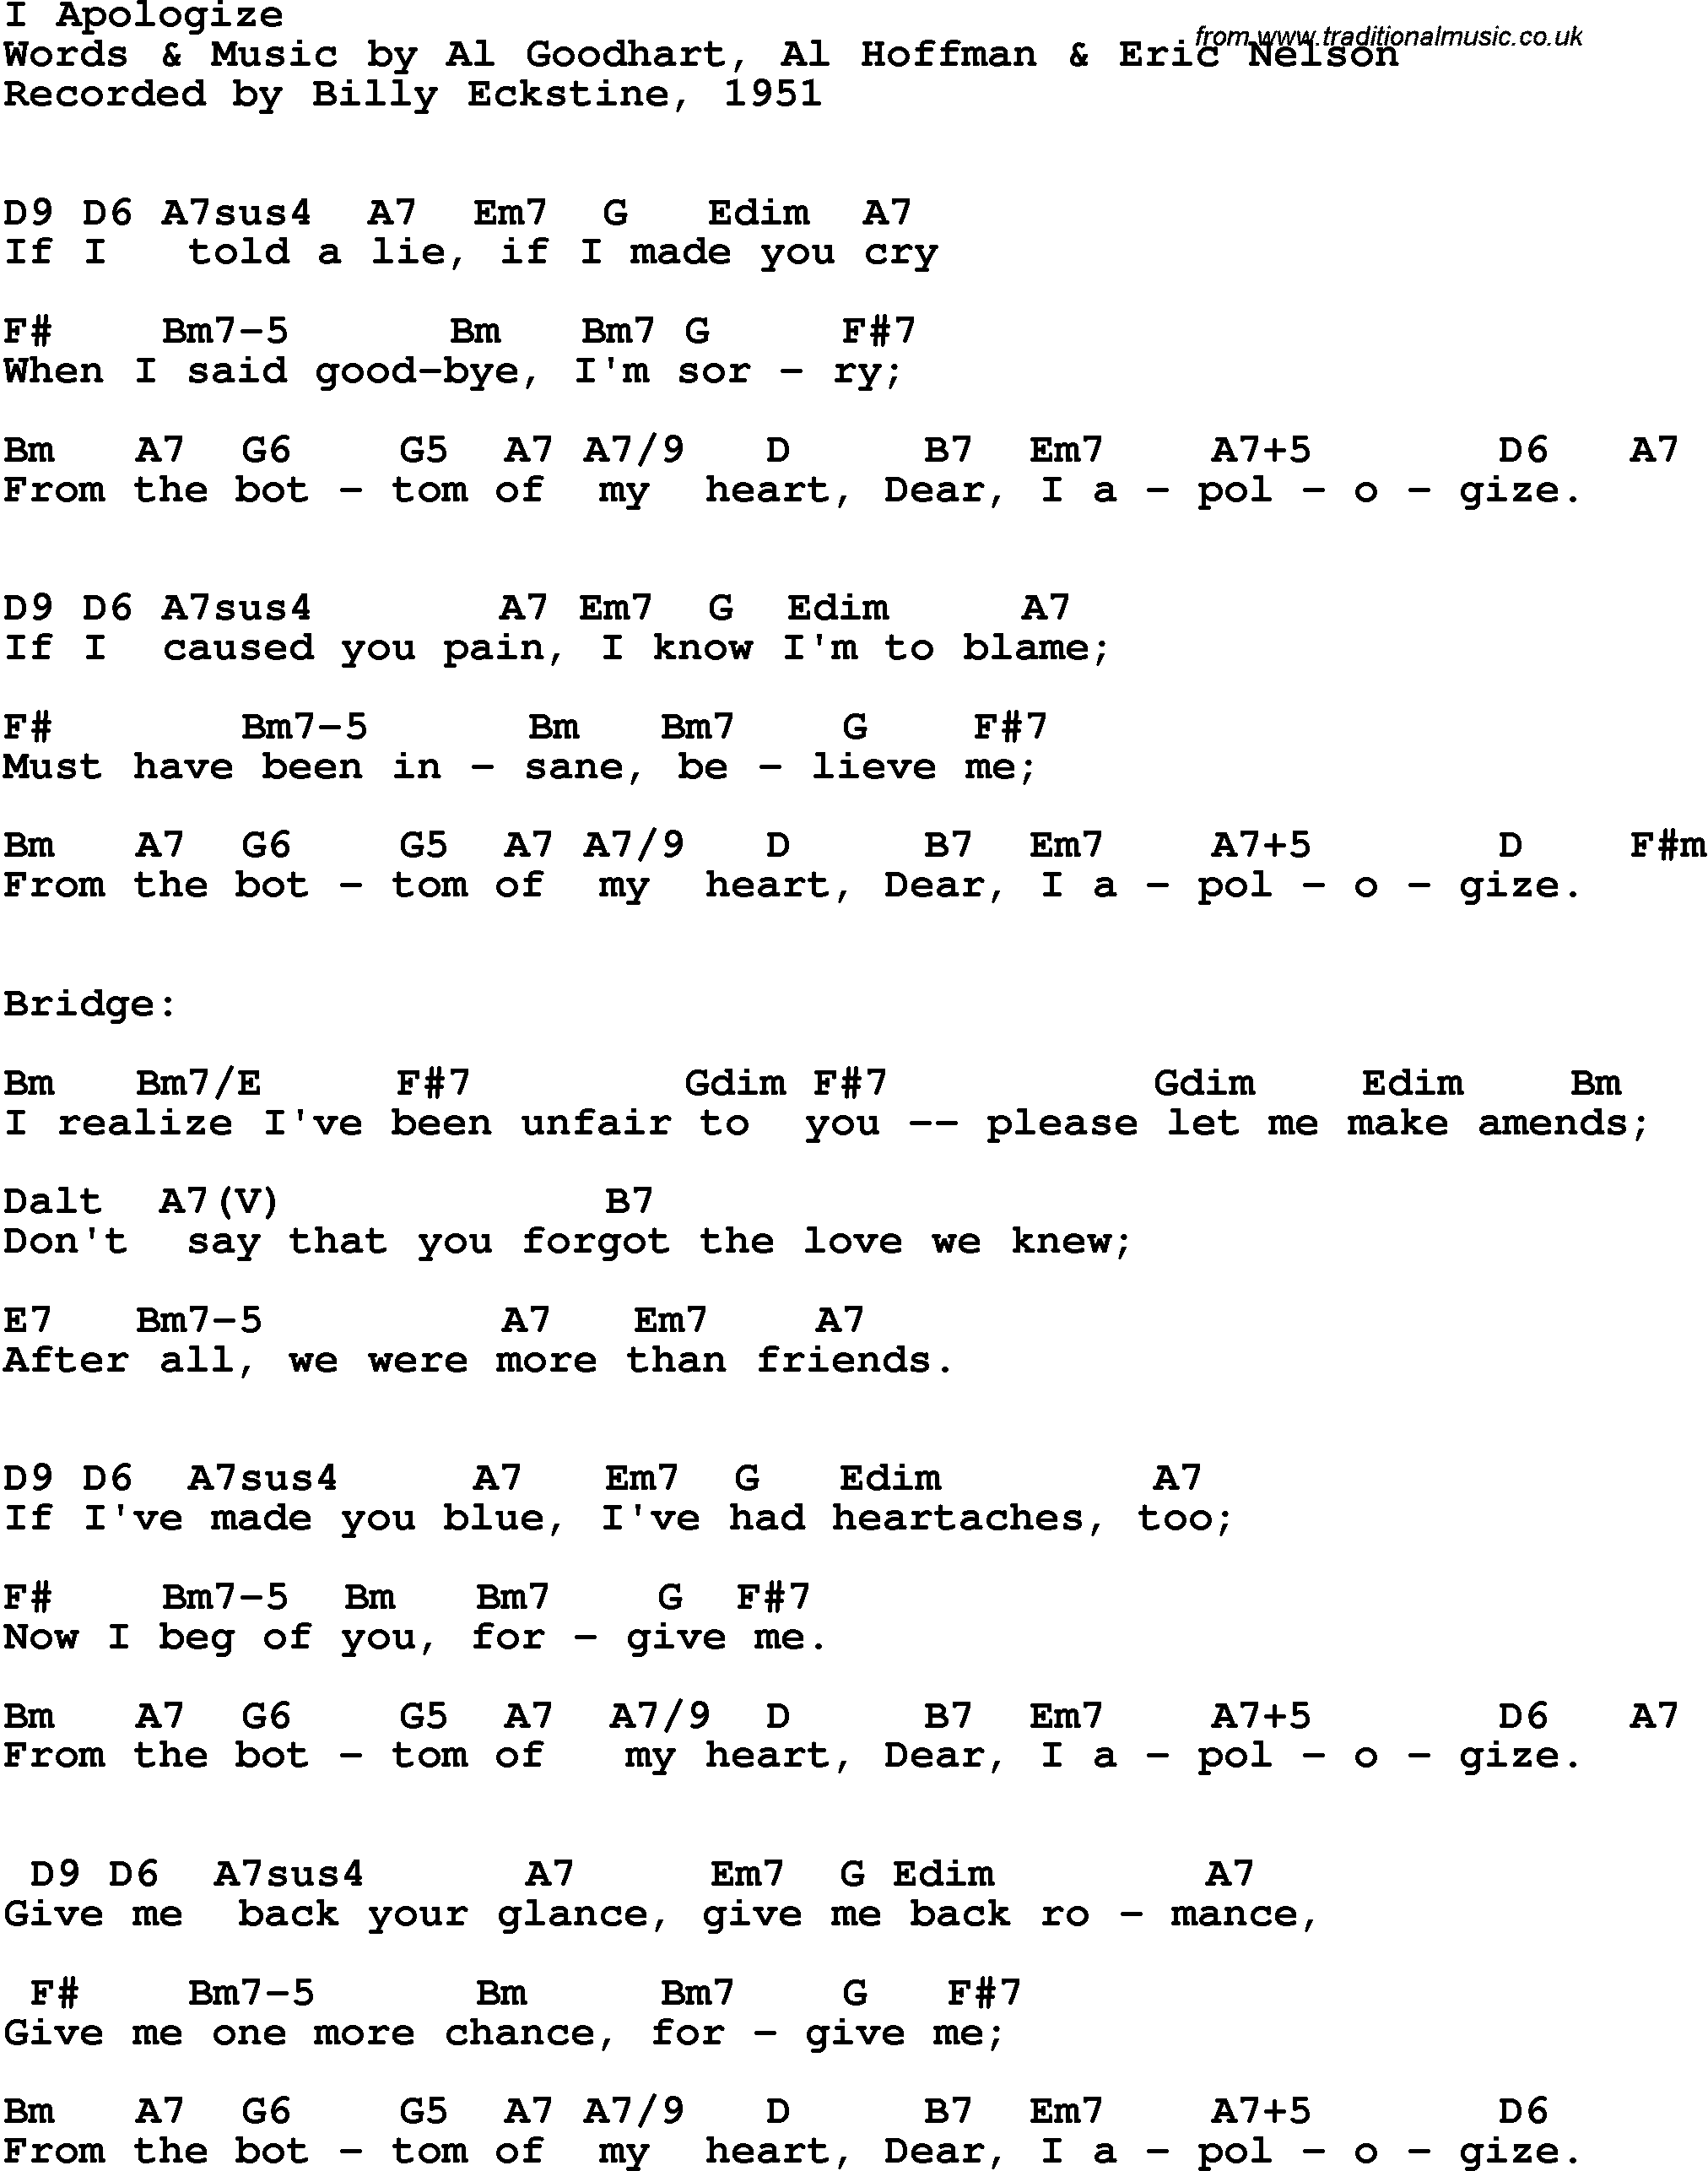 Song Lyrics With Guitar Chords For I Apologize Billy Eckstine 1951